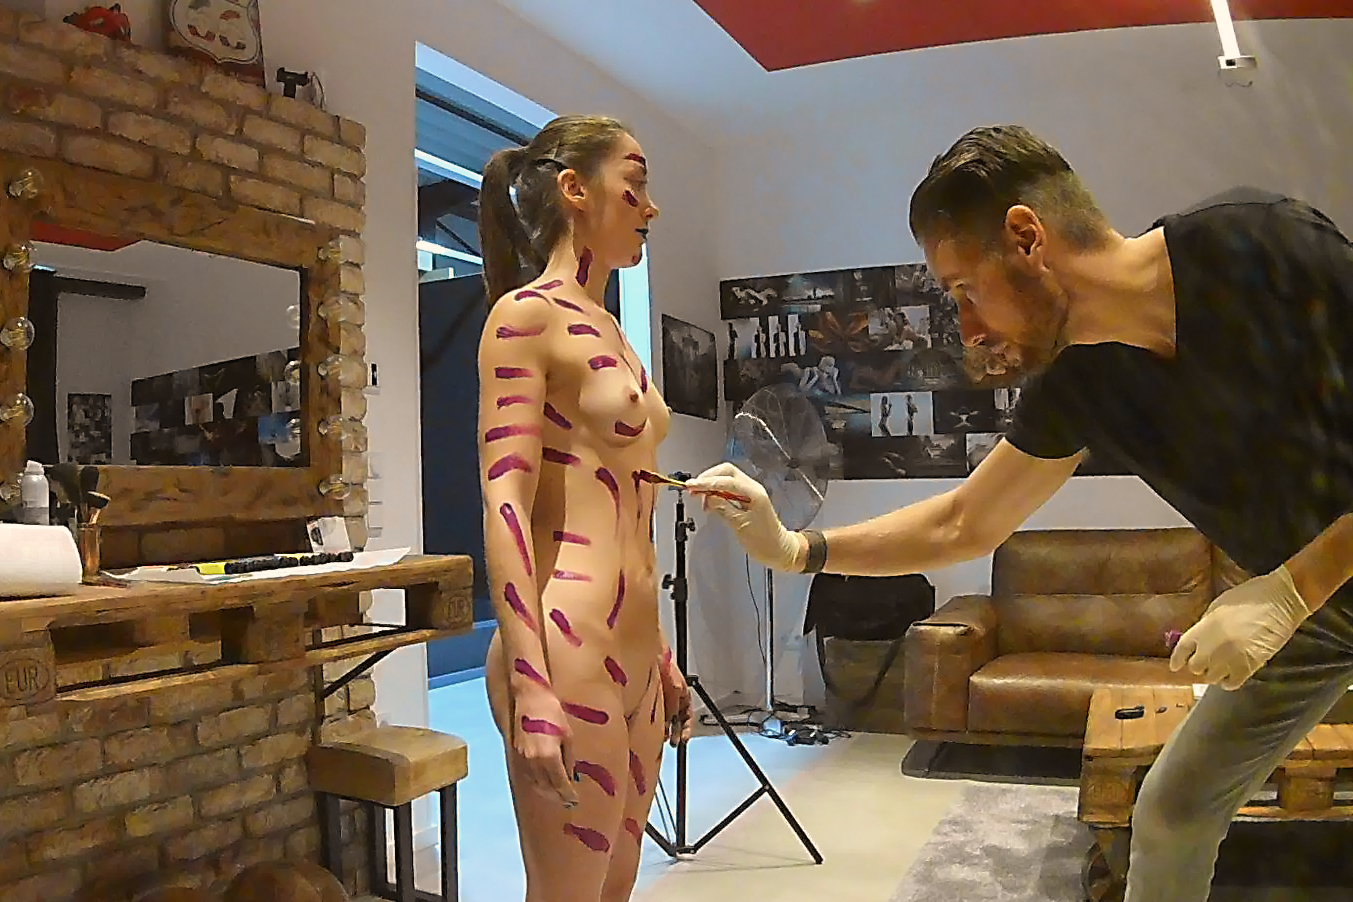 Bodypainting - behind the scenes - Making of  nude art